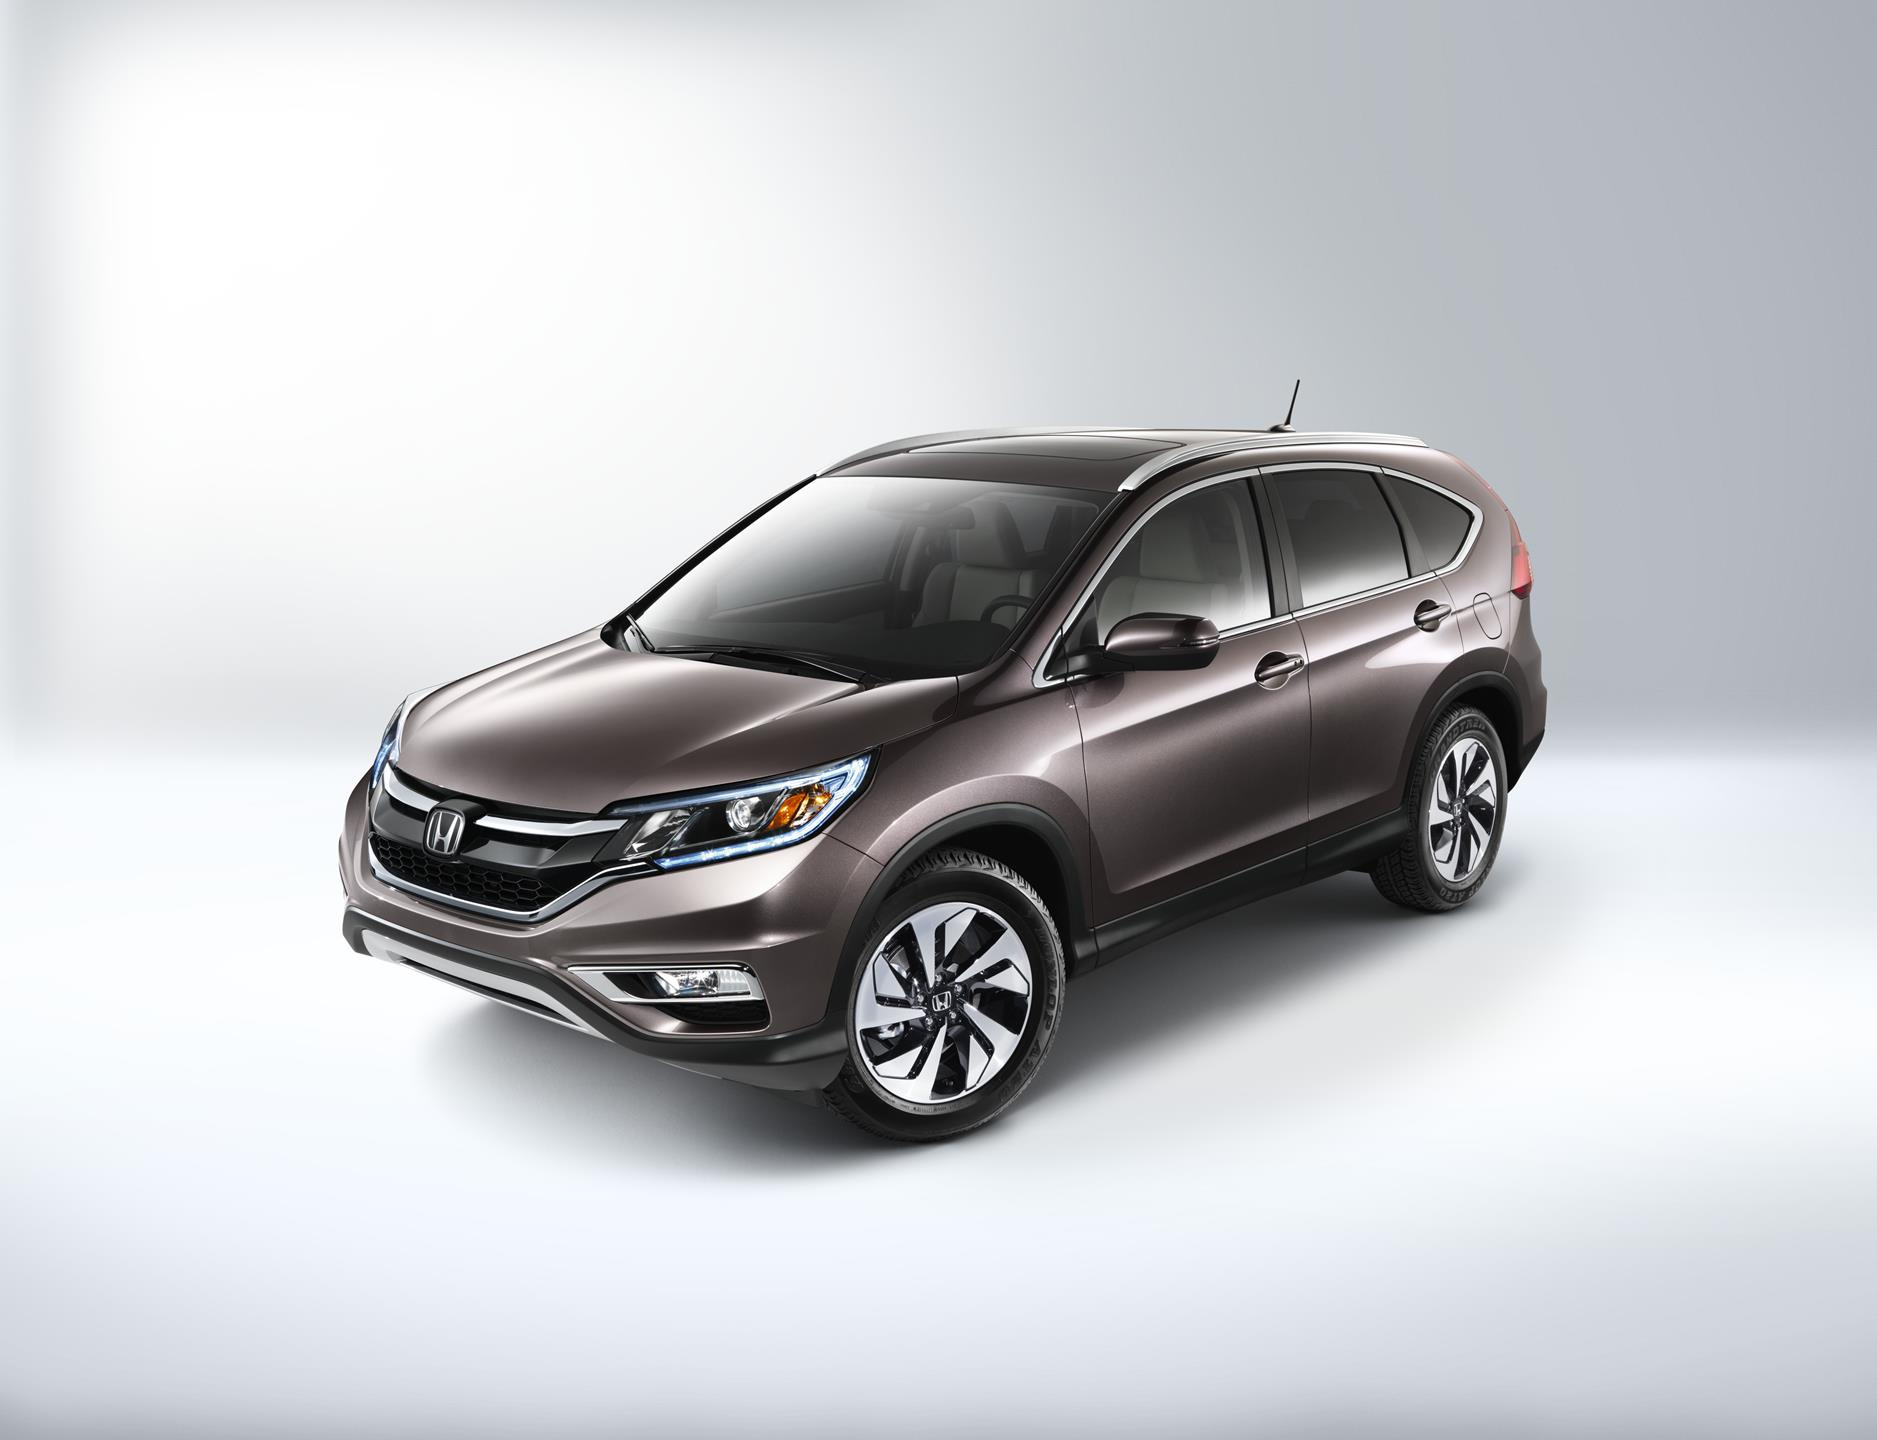 2016 honda cr v news and information. Black Bedroom Furniture Sets. Home Design Ideas